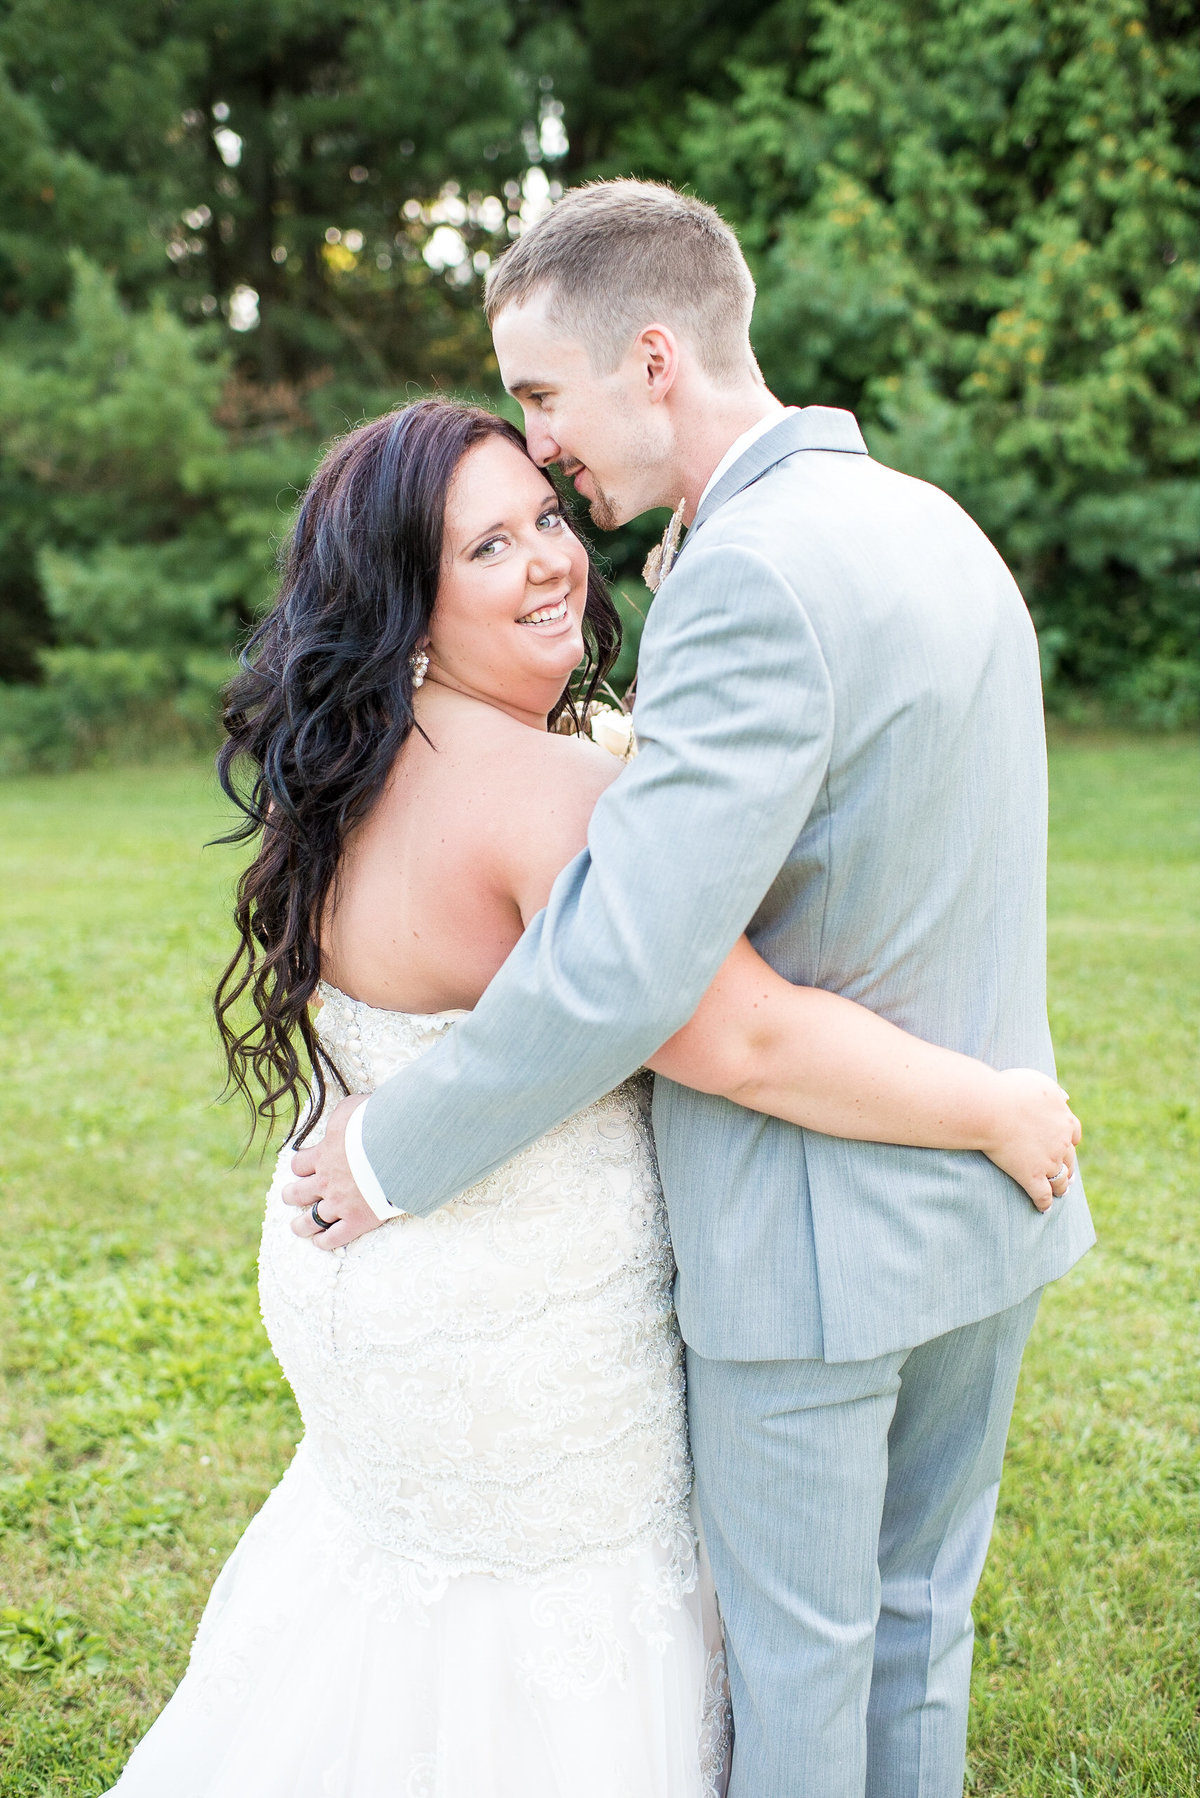 danielle kristine photography-weddings-78